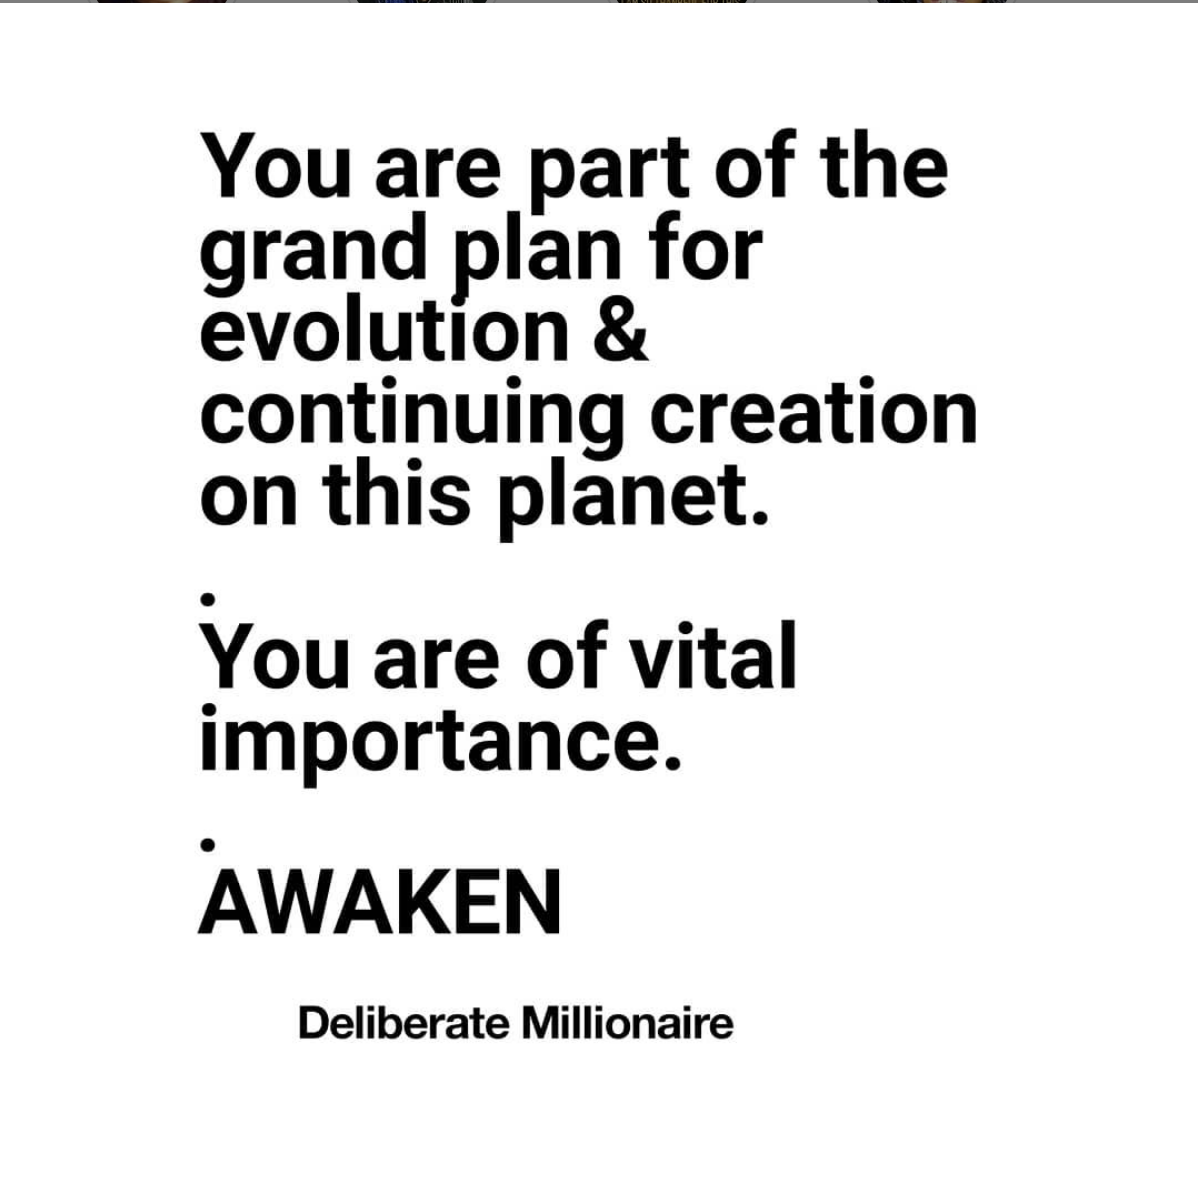 You are part of the grand plan for evolution and continuing creation on this planet